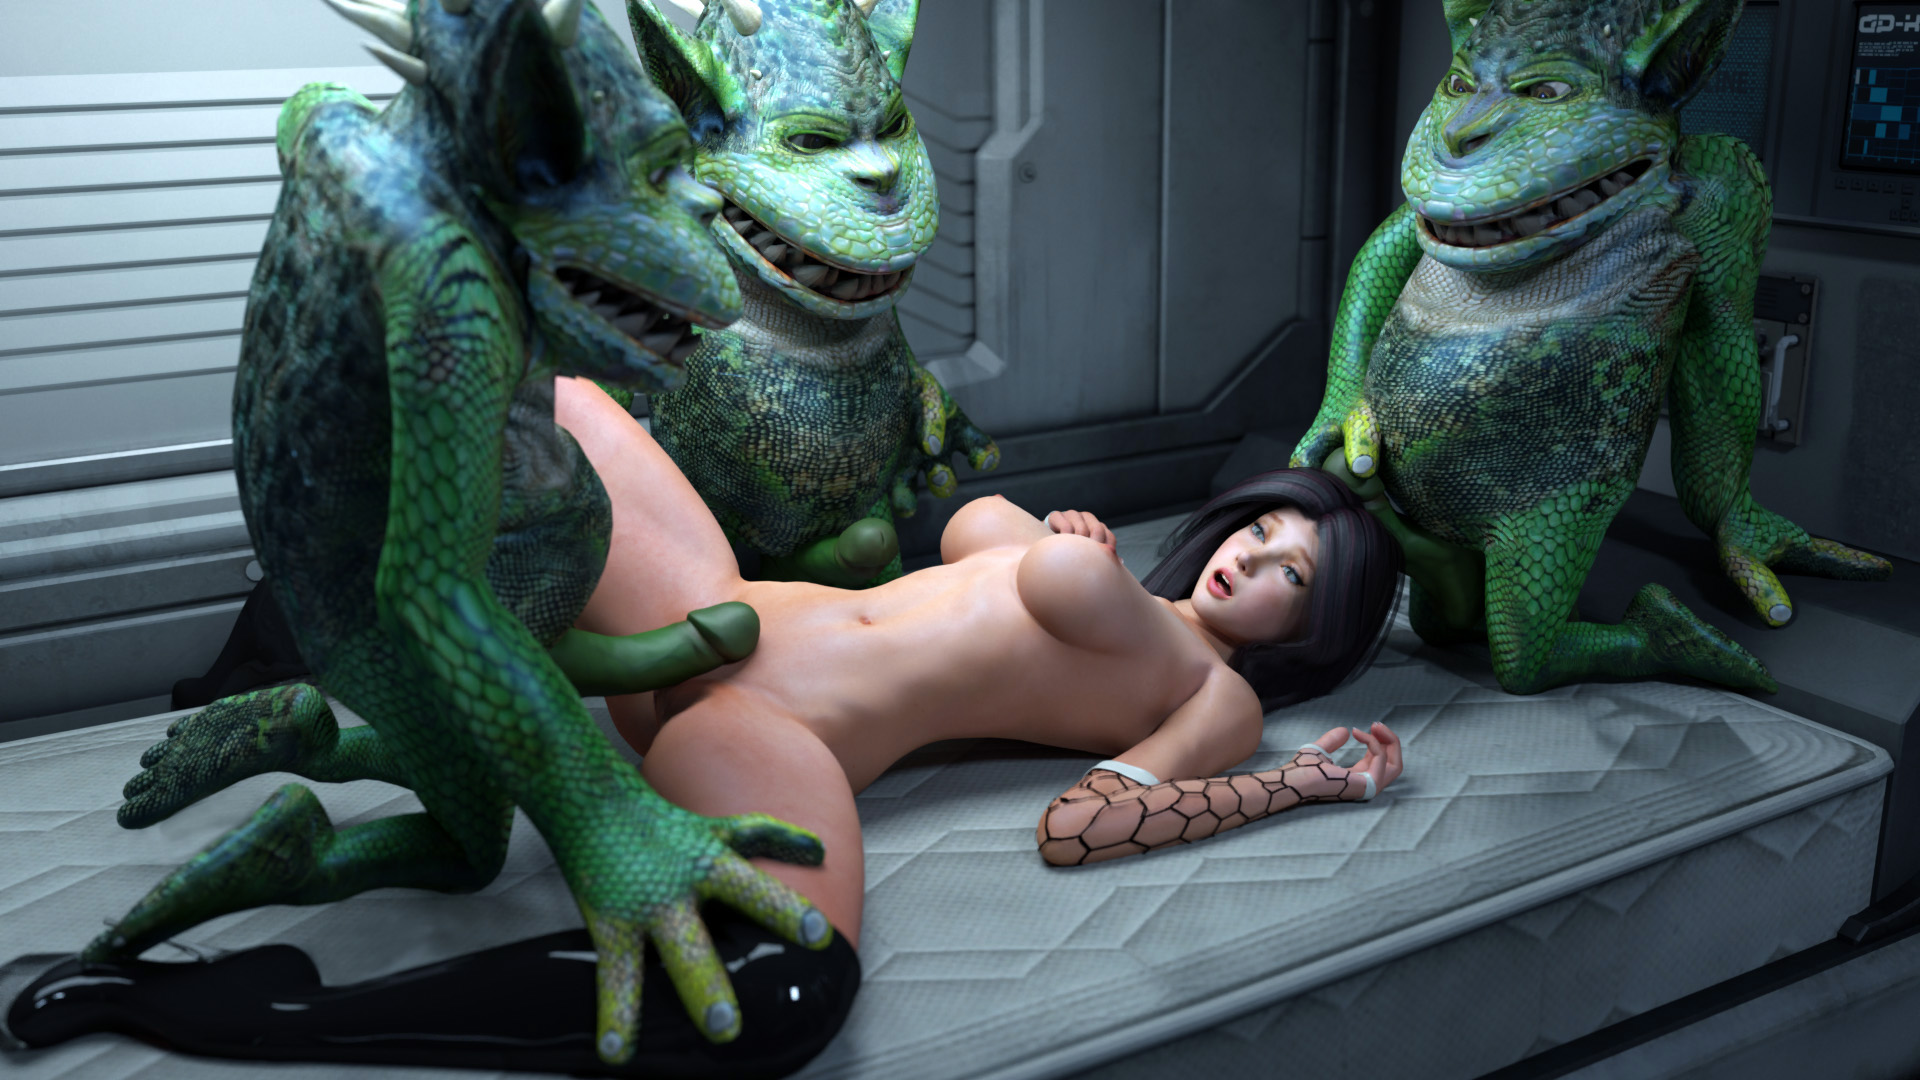 Fuck alien sex video download nude pic